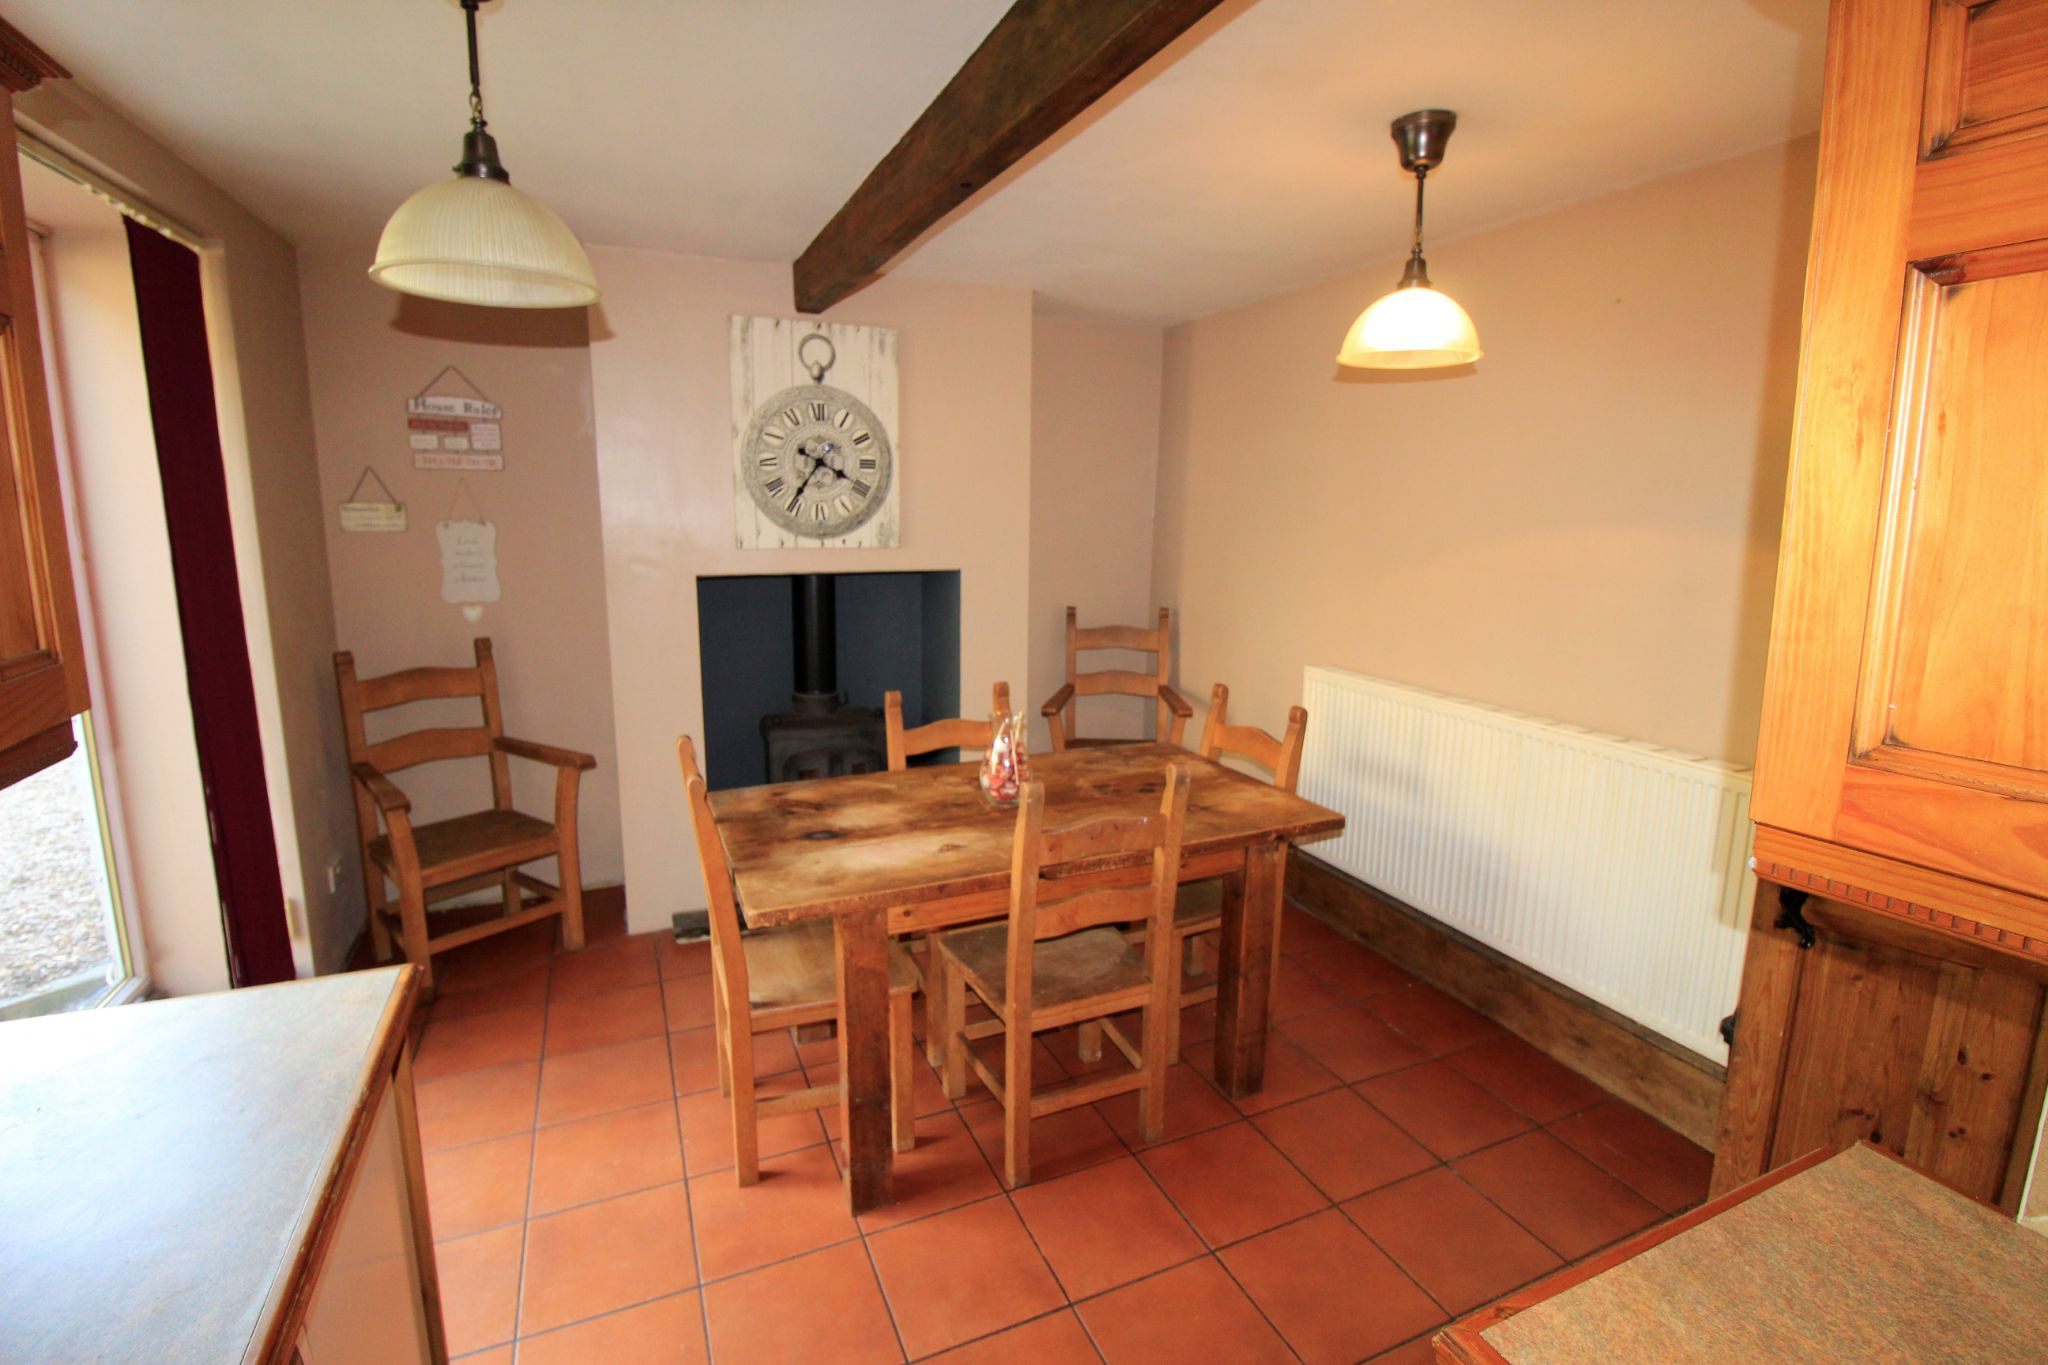 3 bedroom mid terraced house SSTC in Bradford - Dining area